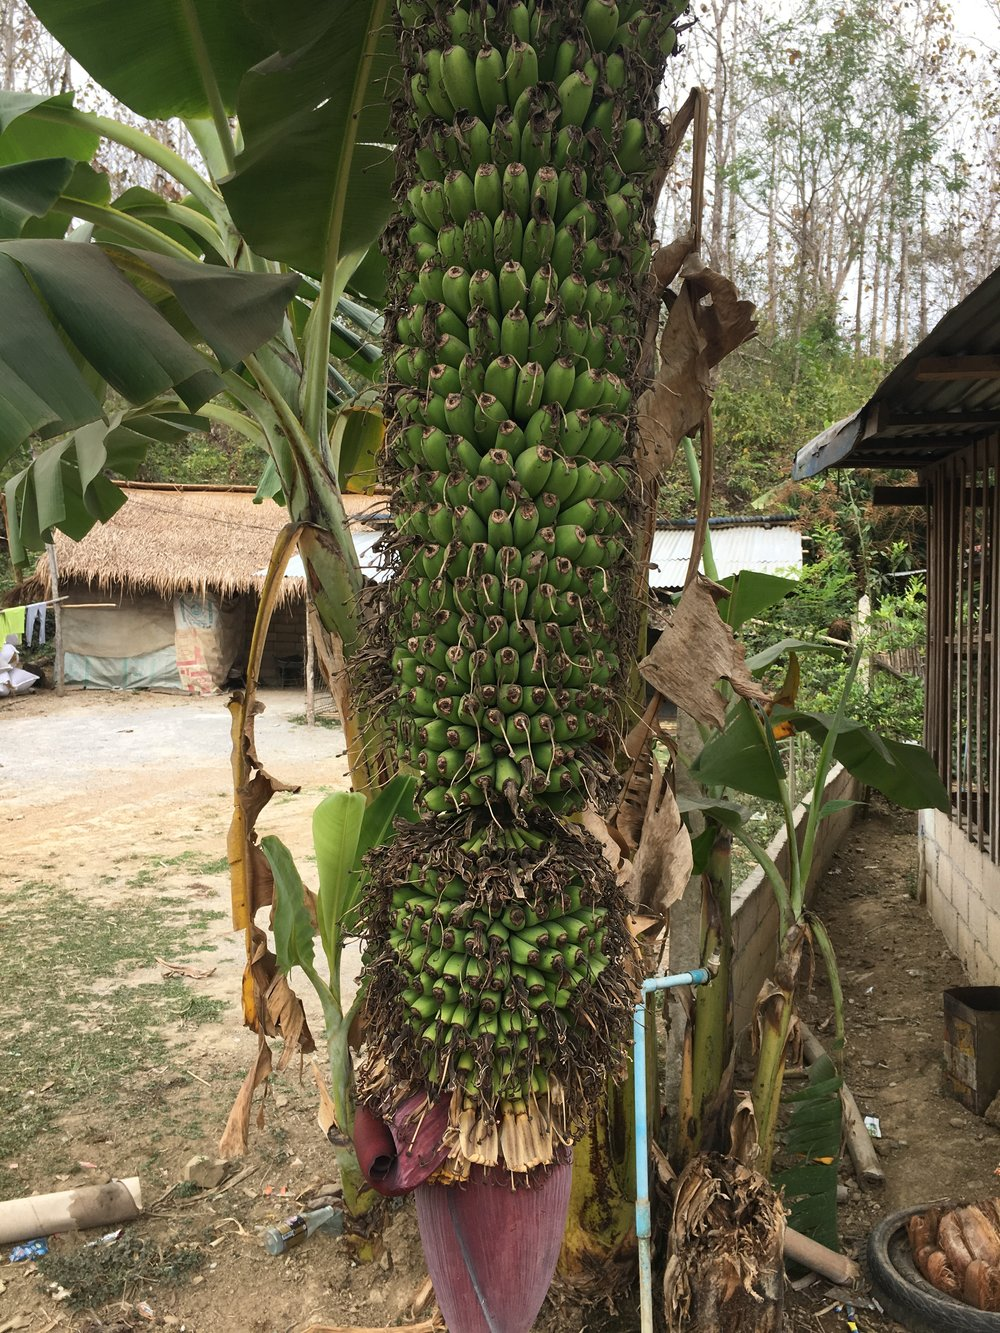 Banana tree on the side of the road. The red root is used in salads and various other things.